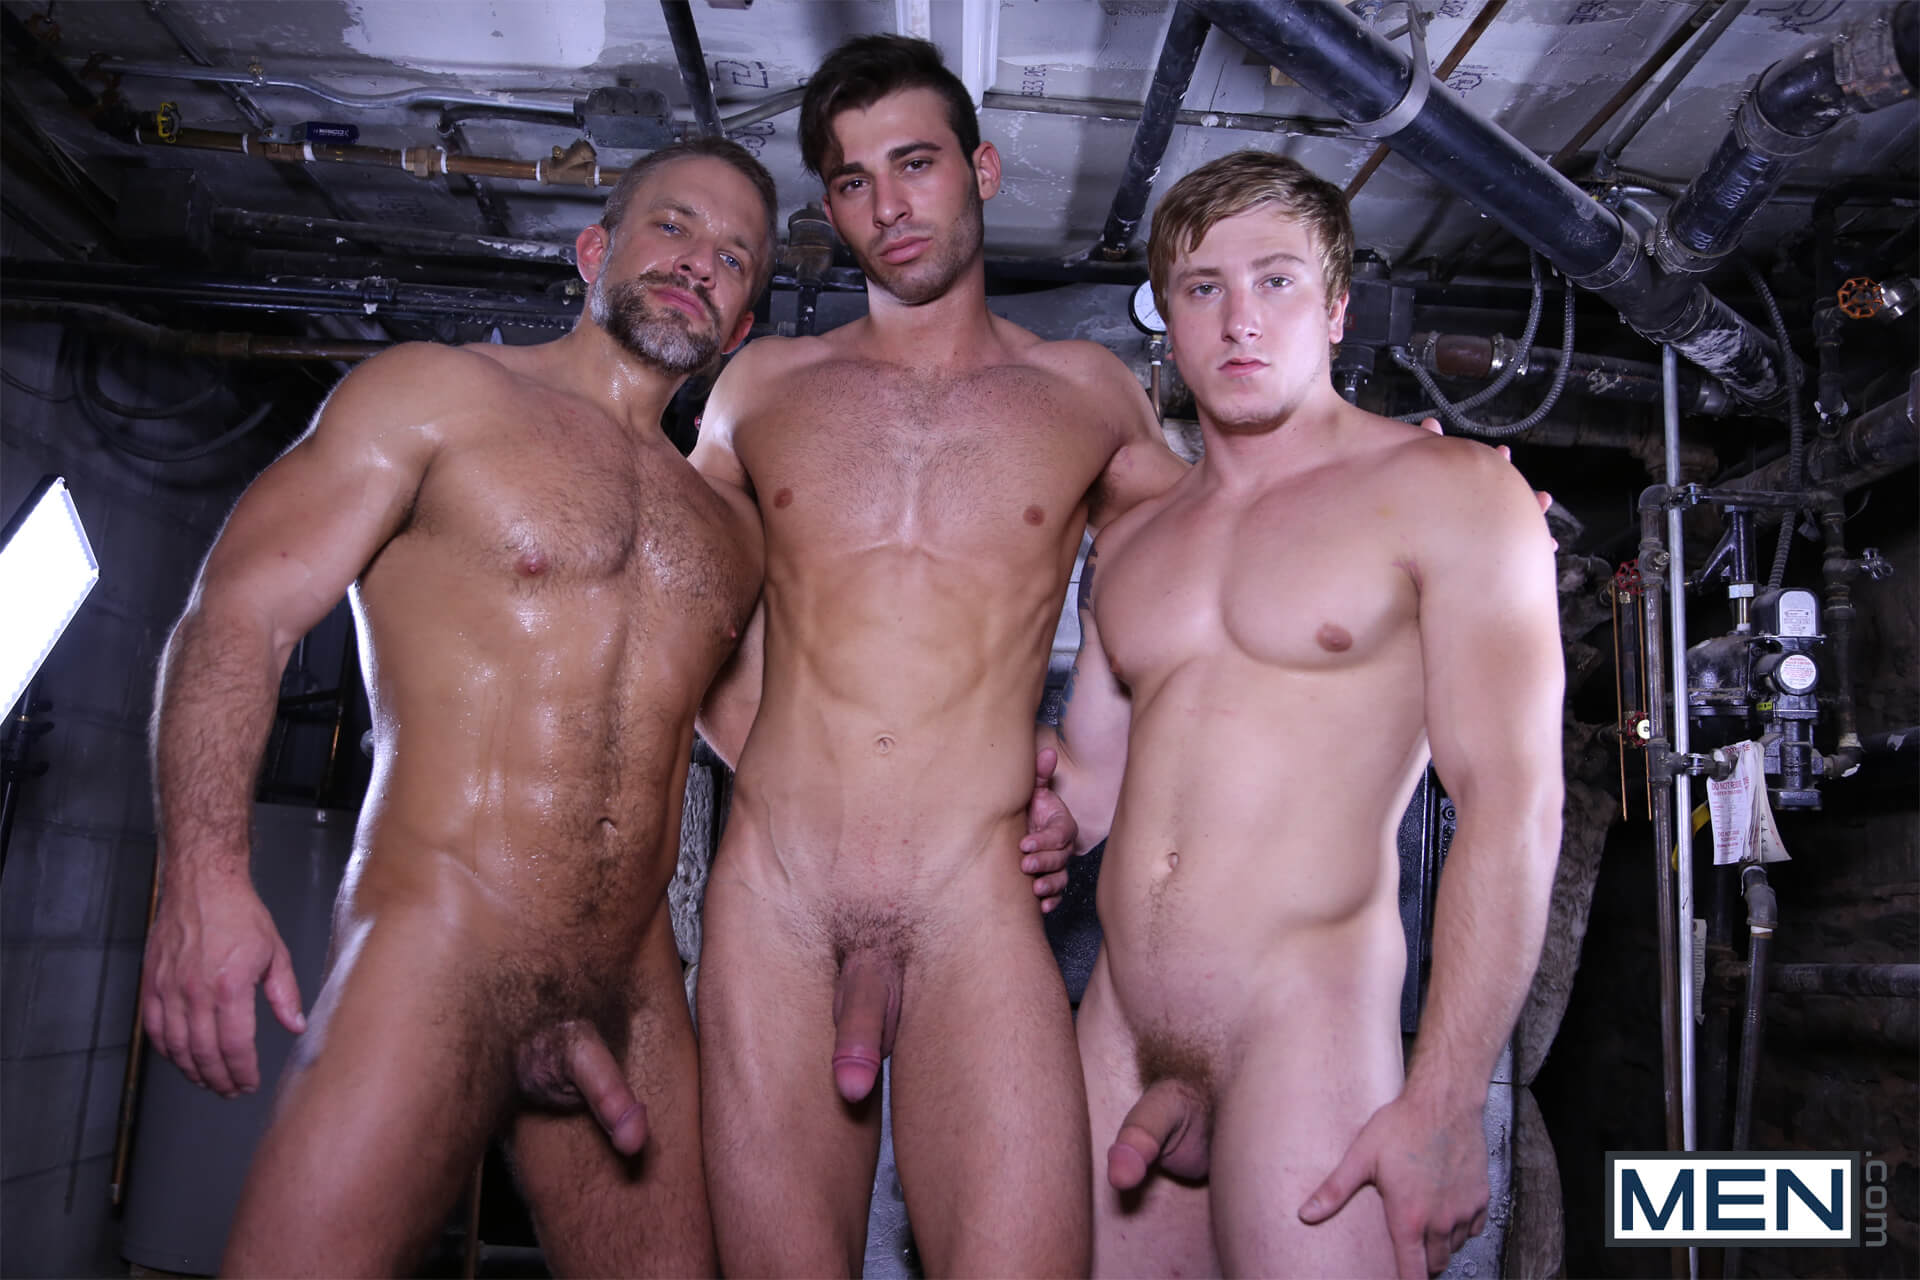 men drill my hole men for sale part 3 dirk caber jarec wentworth tom faulk gay porn blog image 6